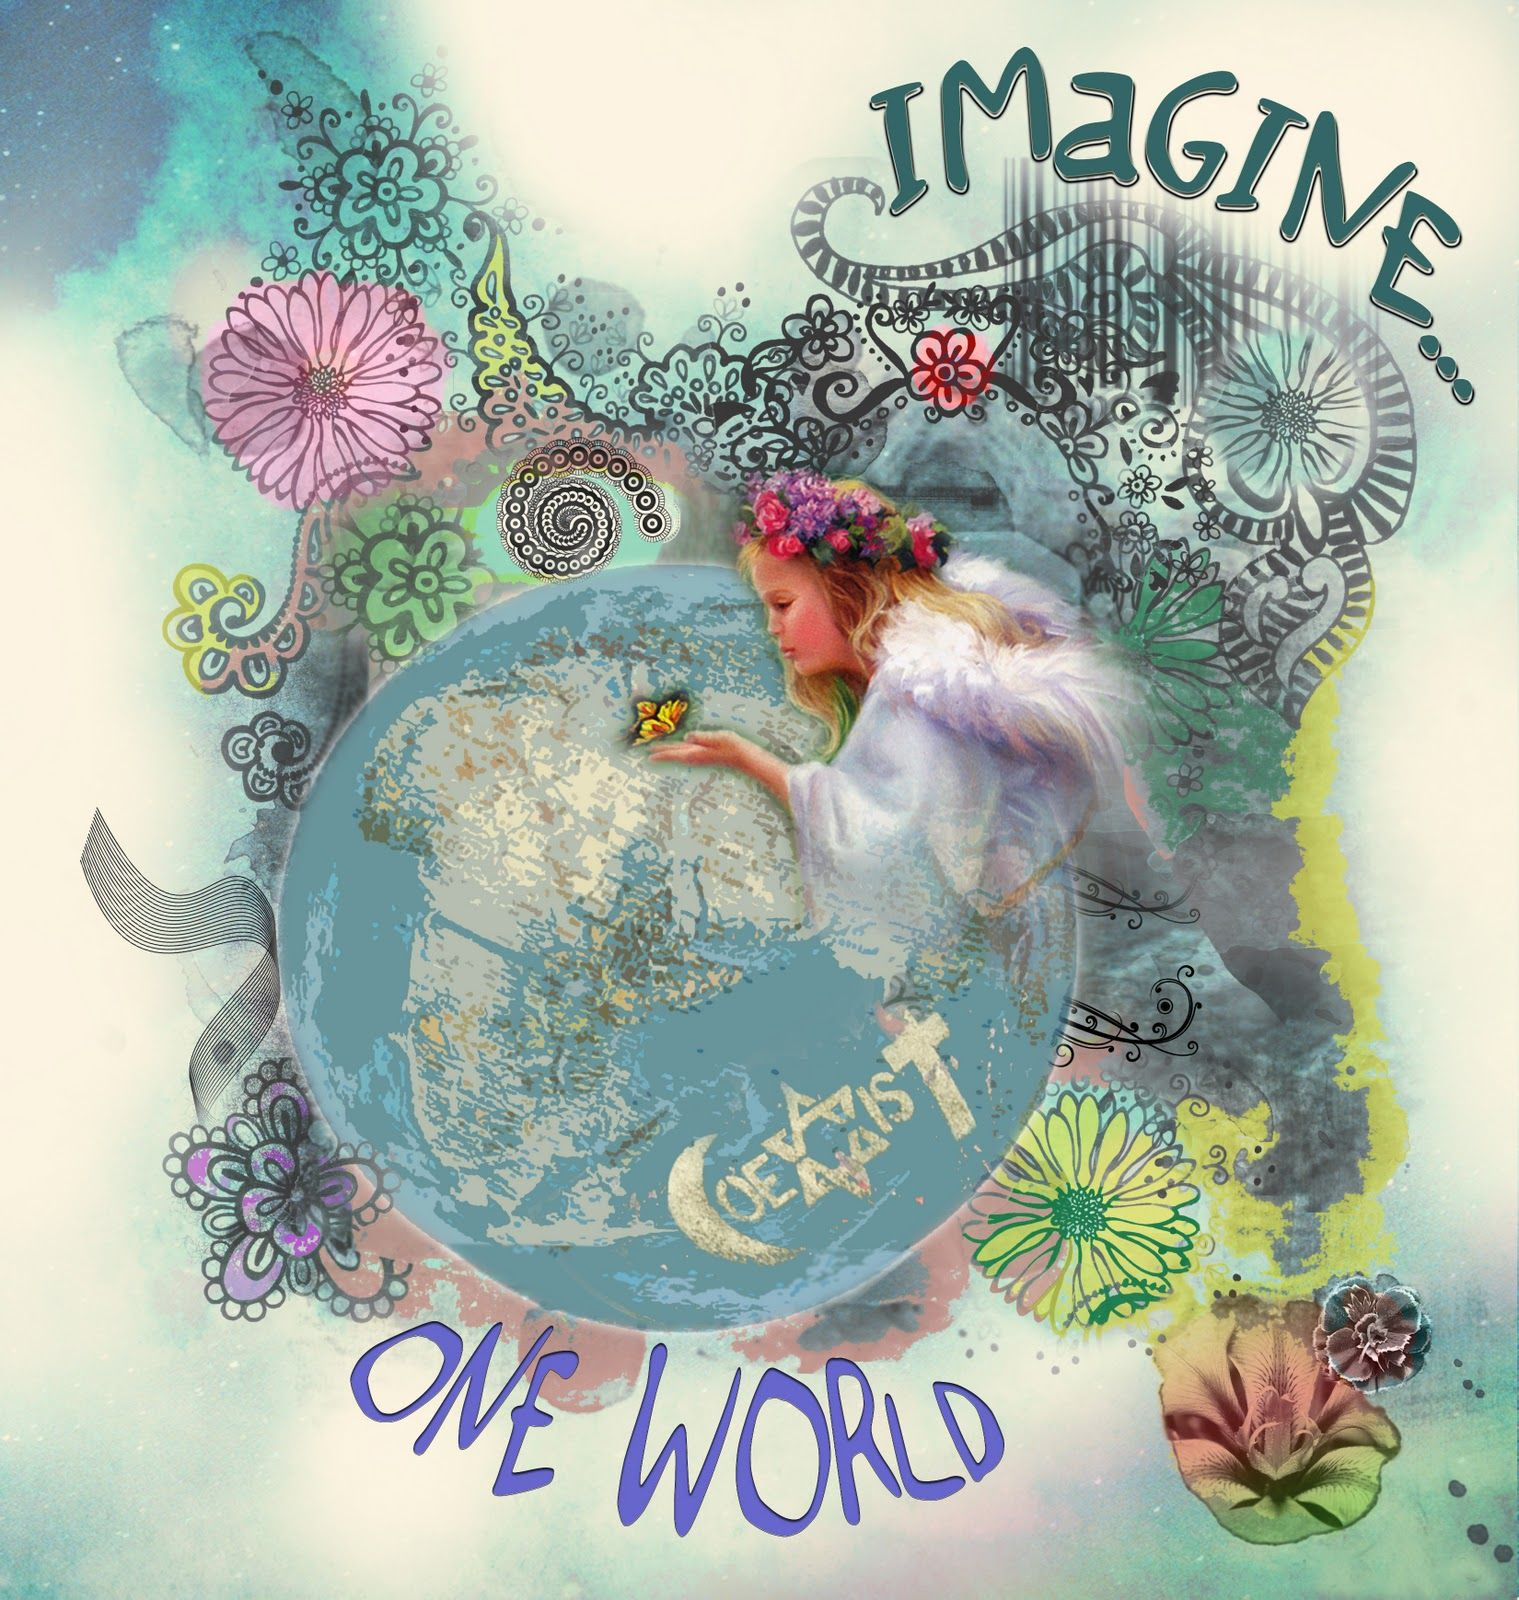 Peace And Love Images And Quotes: Imagine All The People Sharing All The World...""